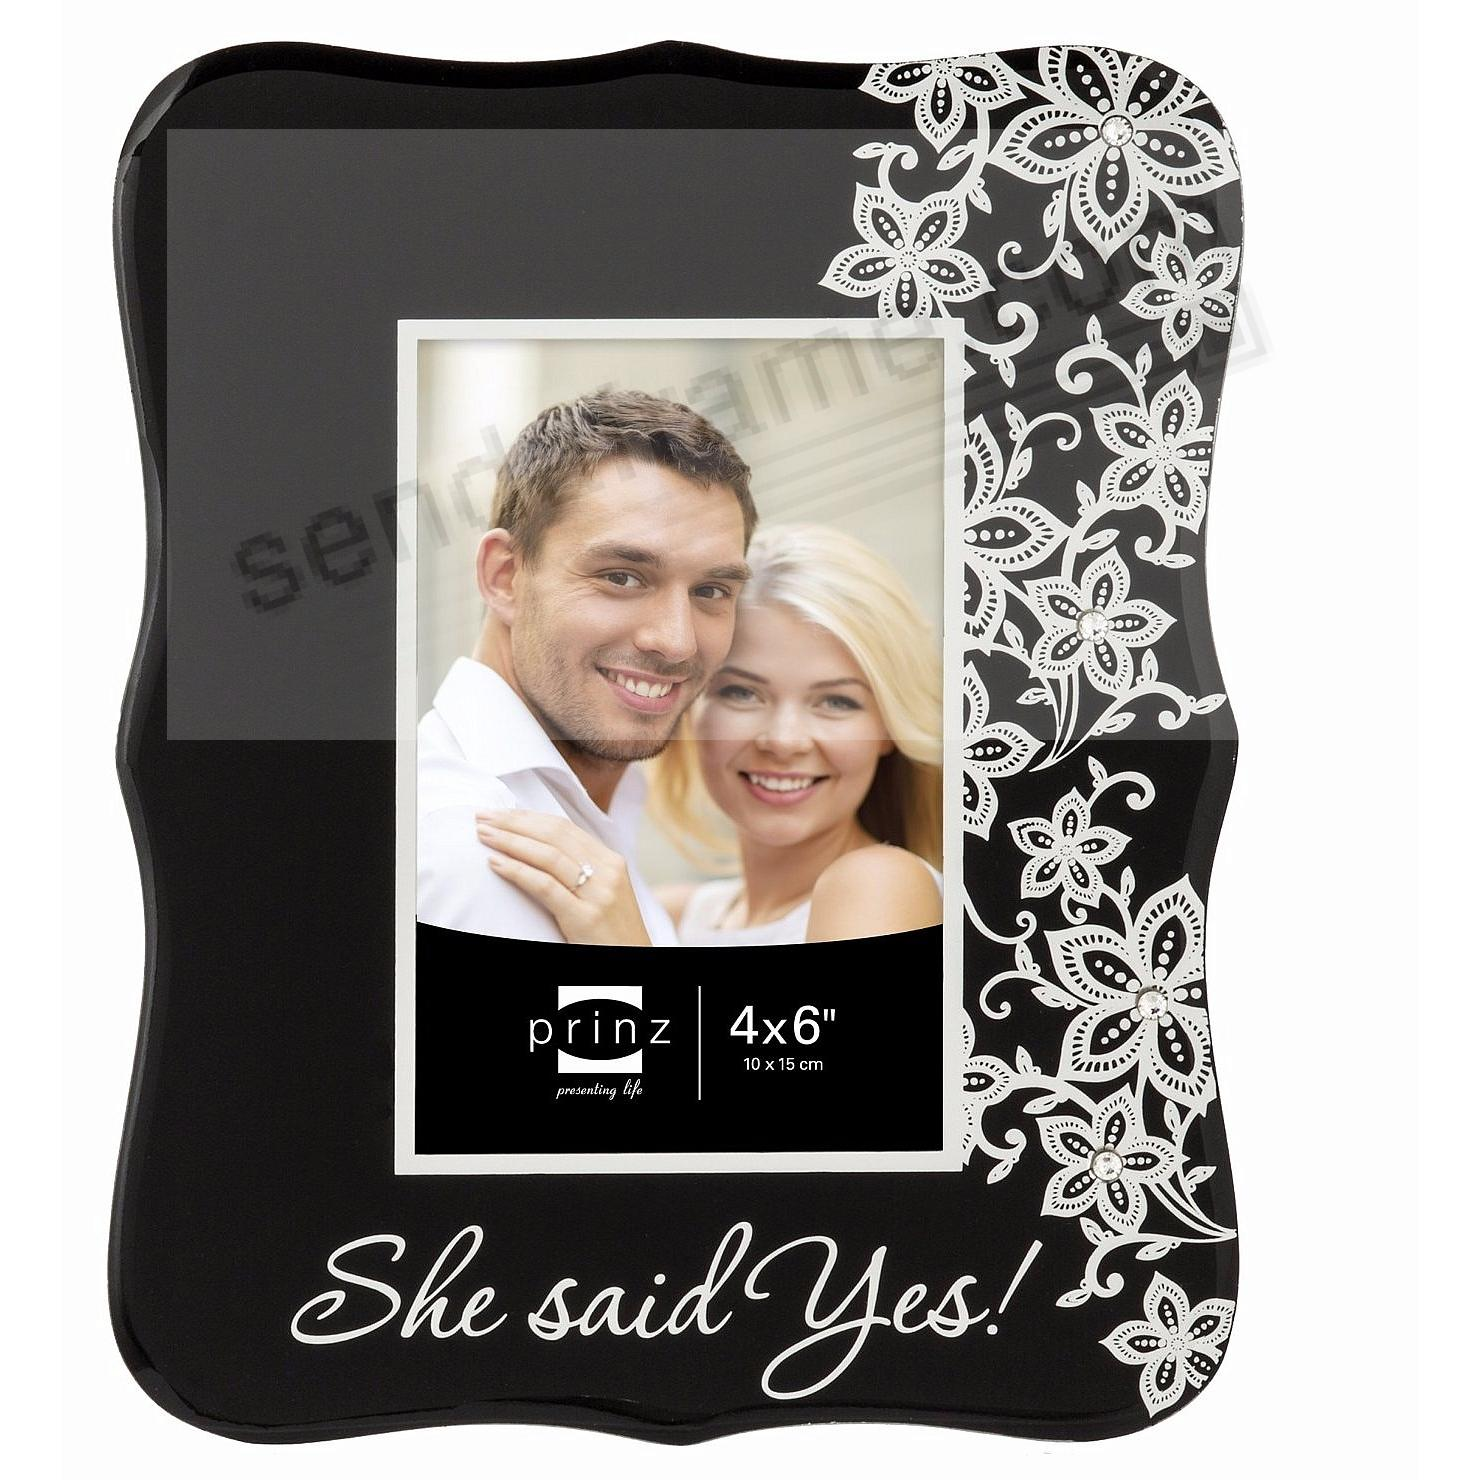 She Said Yes Frame By Prinz Picture Frames Photo Albums